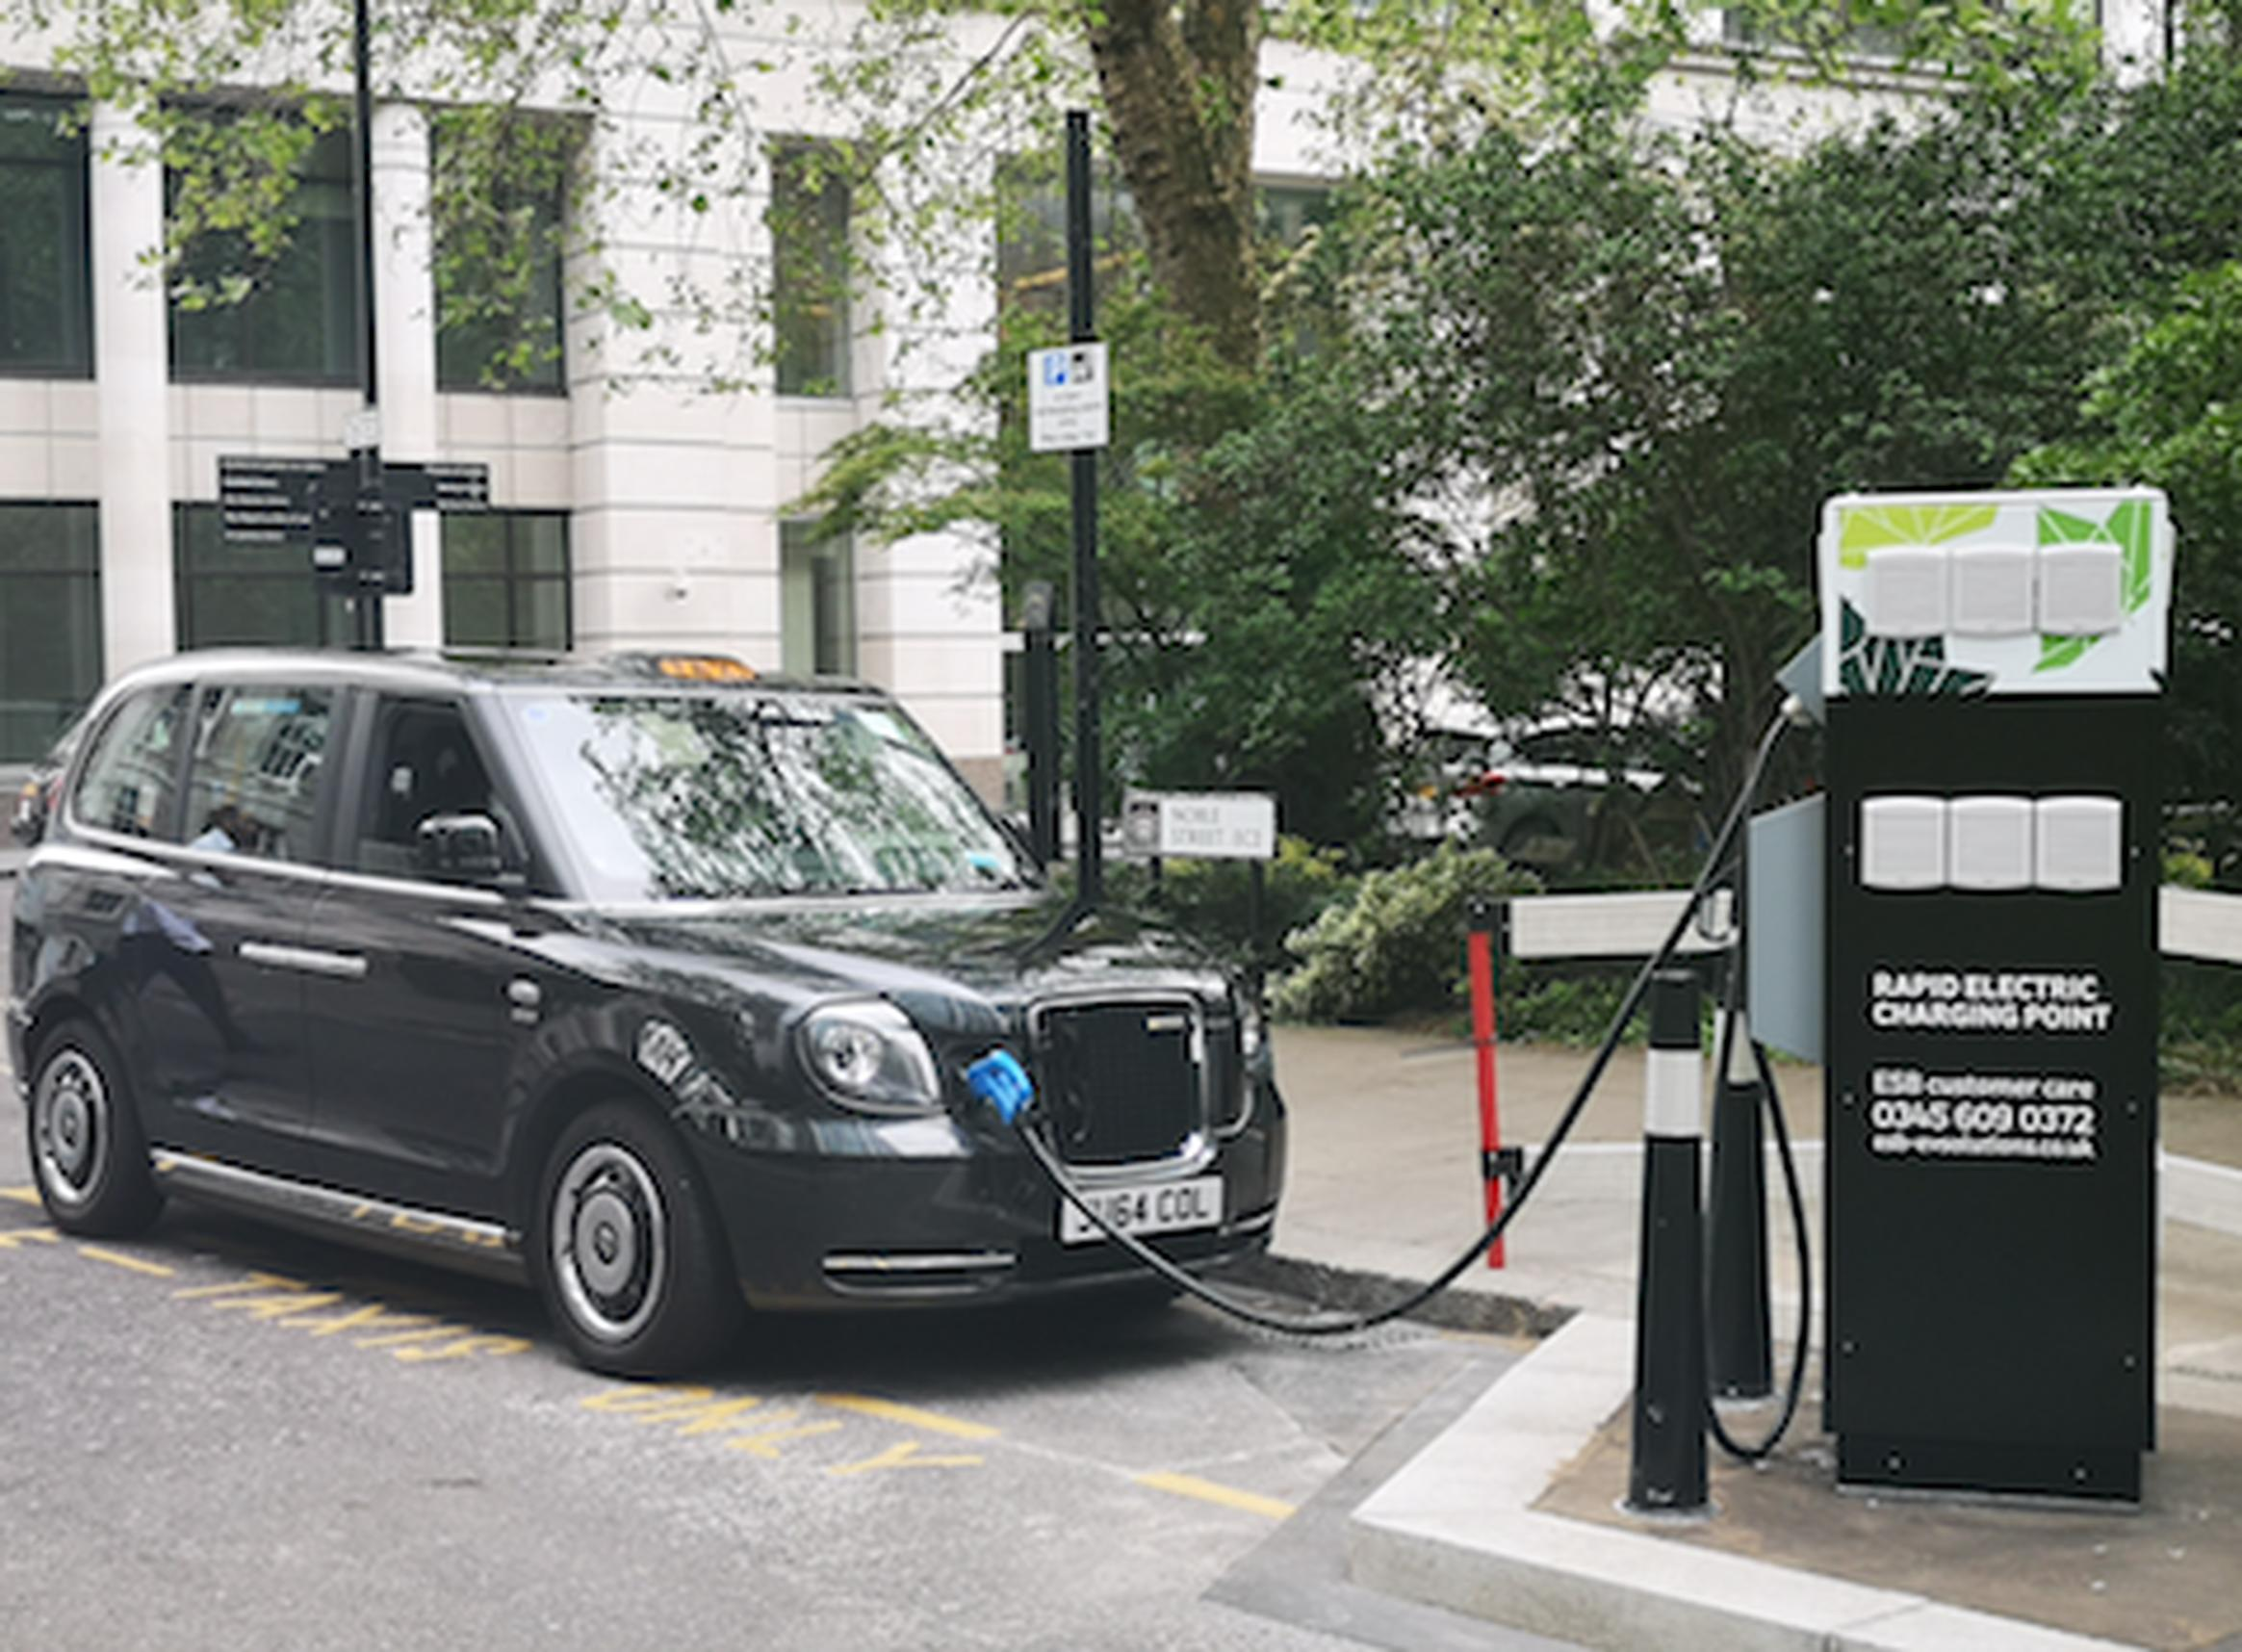 The Noble Street rapid electric taxi charging point